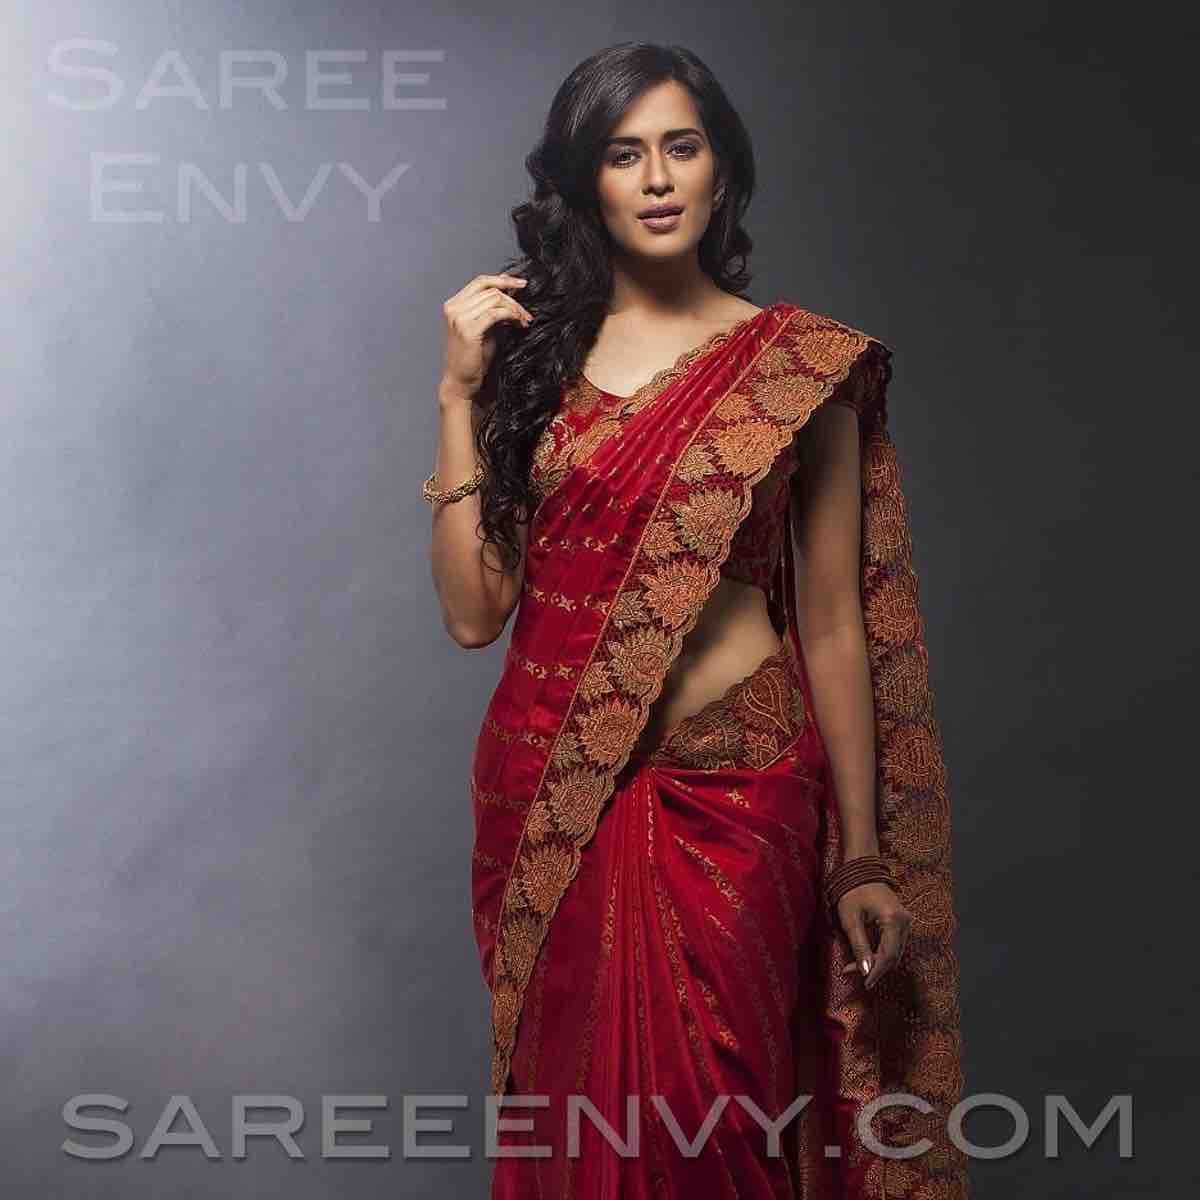 21b844ddaf03a8 Saree Envy – Unique Designer High Quality Handcrafted Sarees